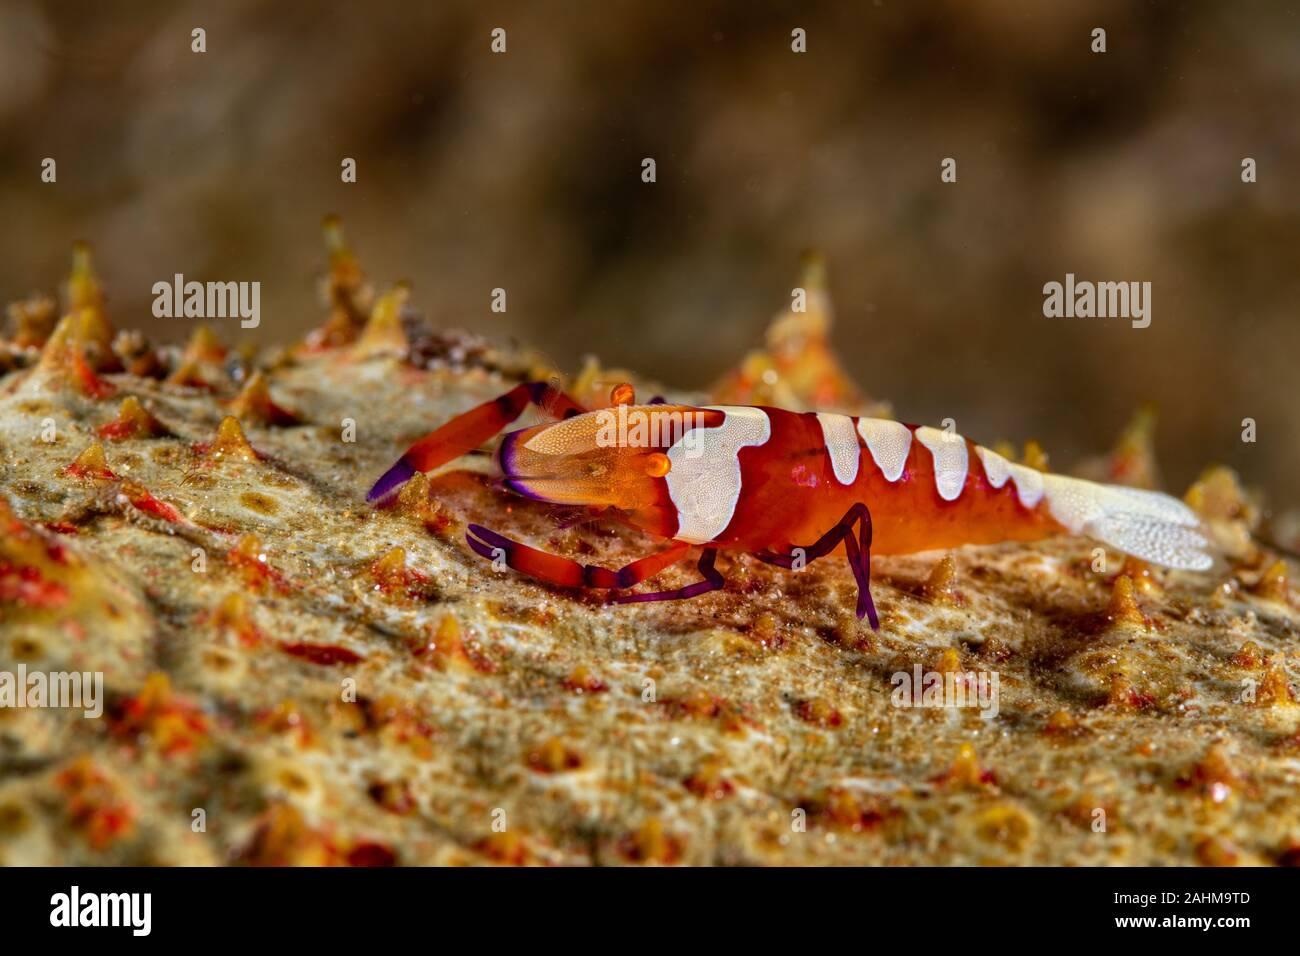 Emperor shrimp, Periclimenes imperator, is a organism of shrimp with a wide distribution across the Indo-Pacific Stock Photo